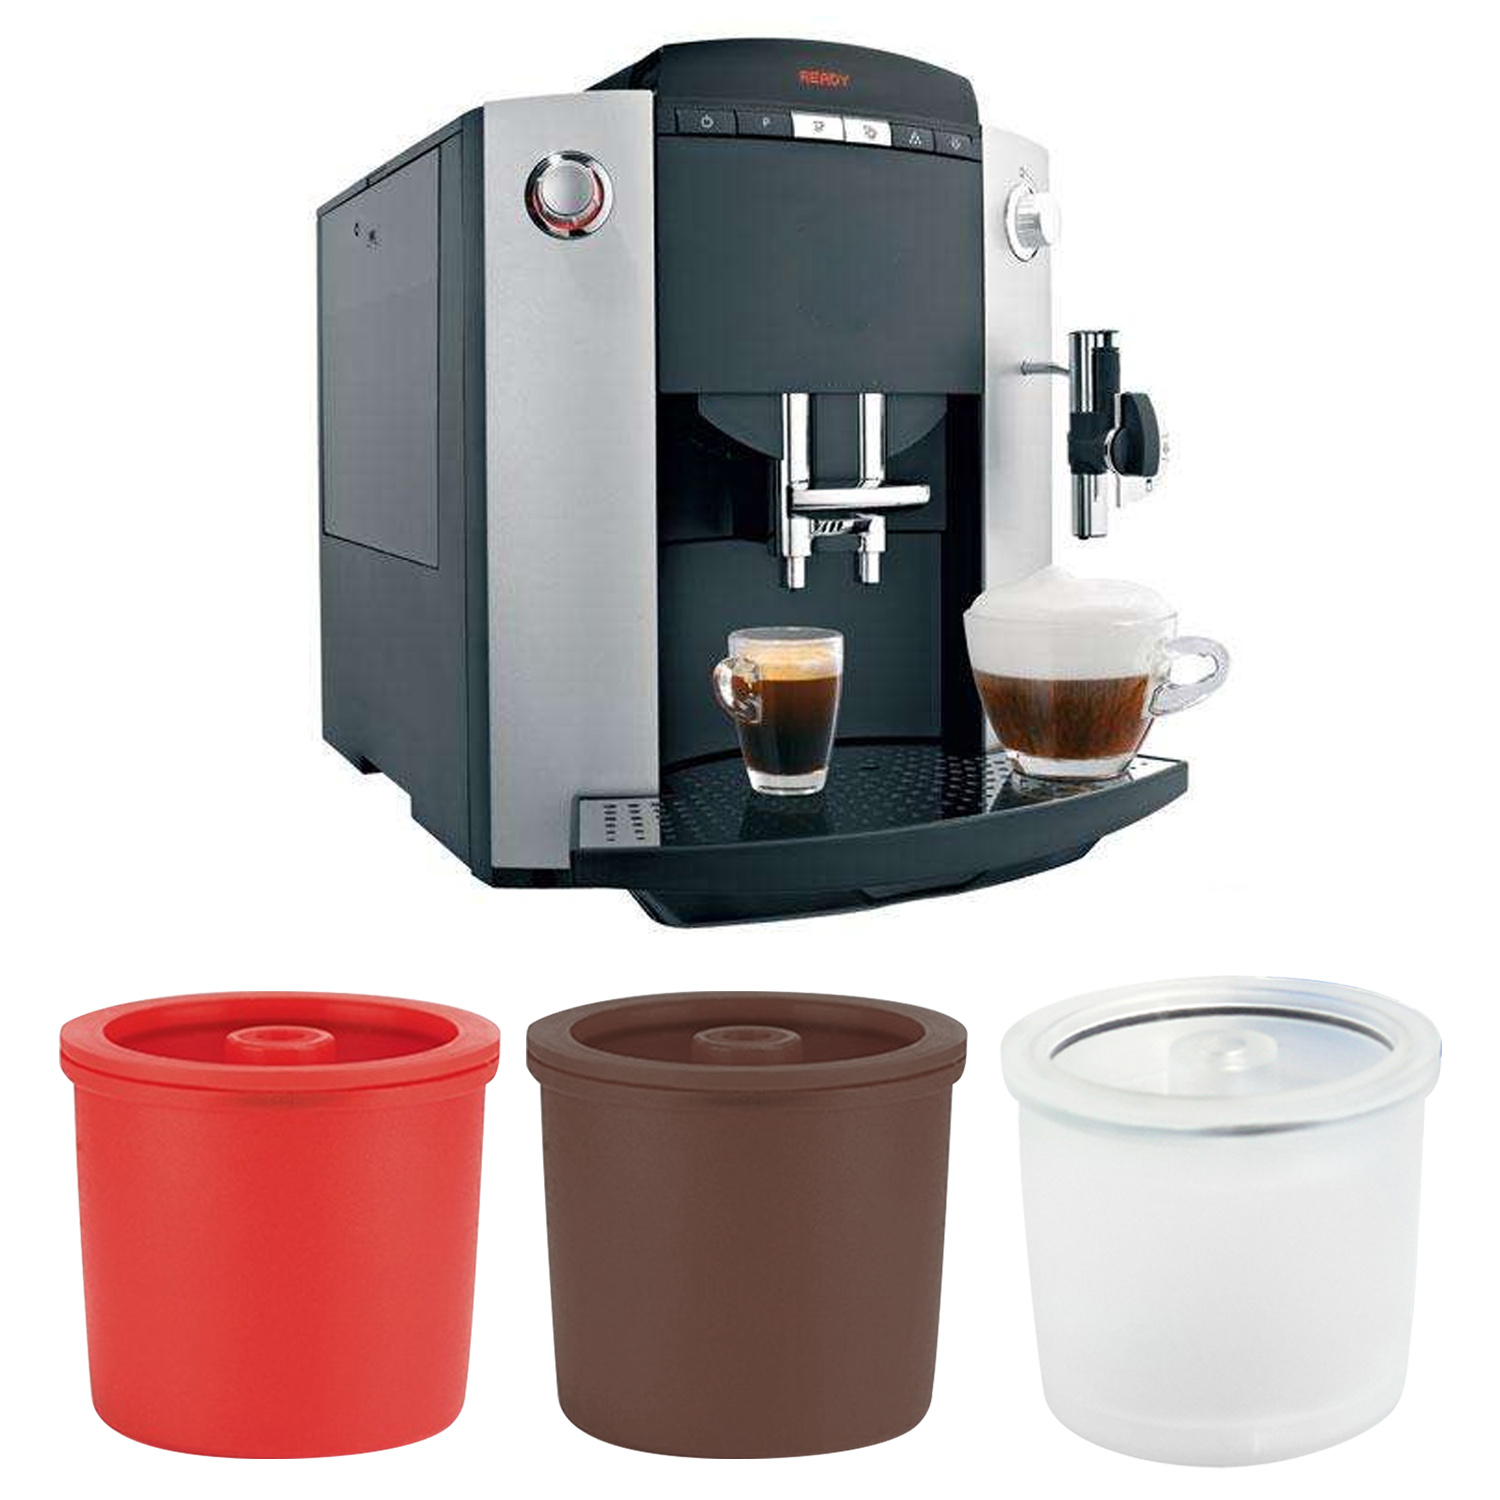 Behogar Refillable Reusable Capsule Cup Filter for Illy Espresso Coffee Machine cup